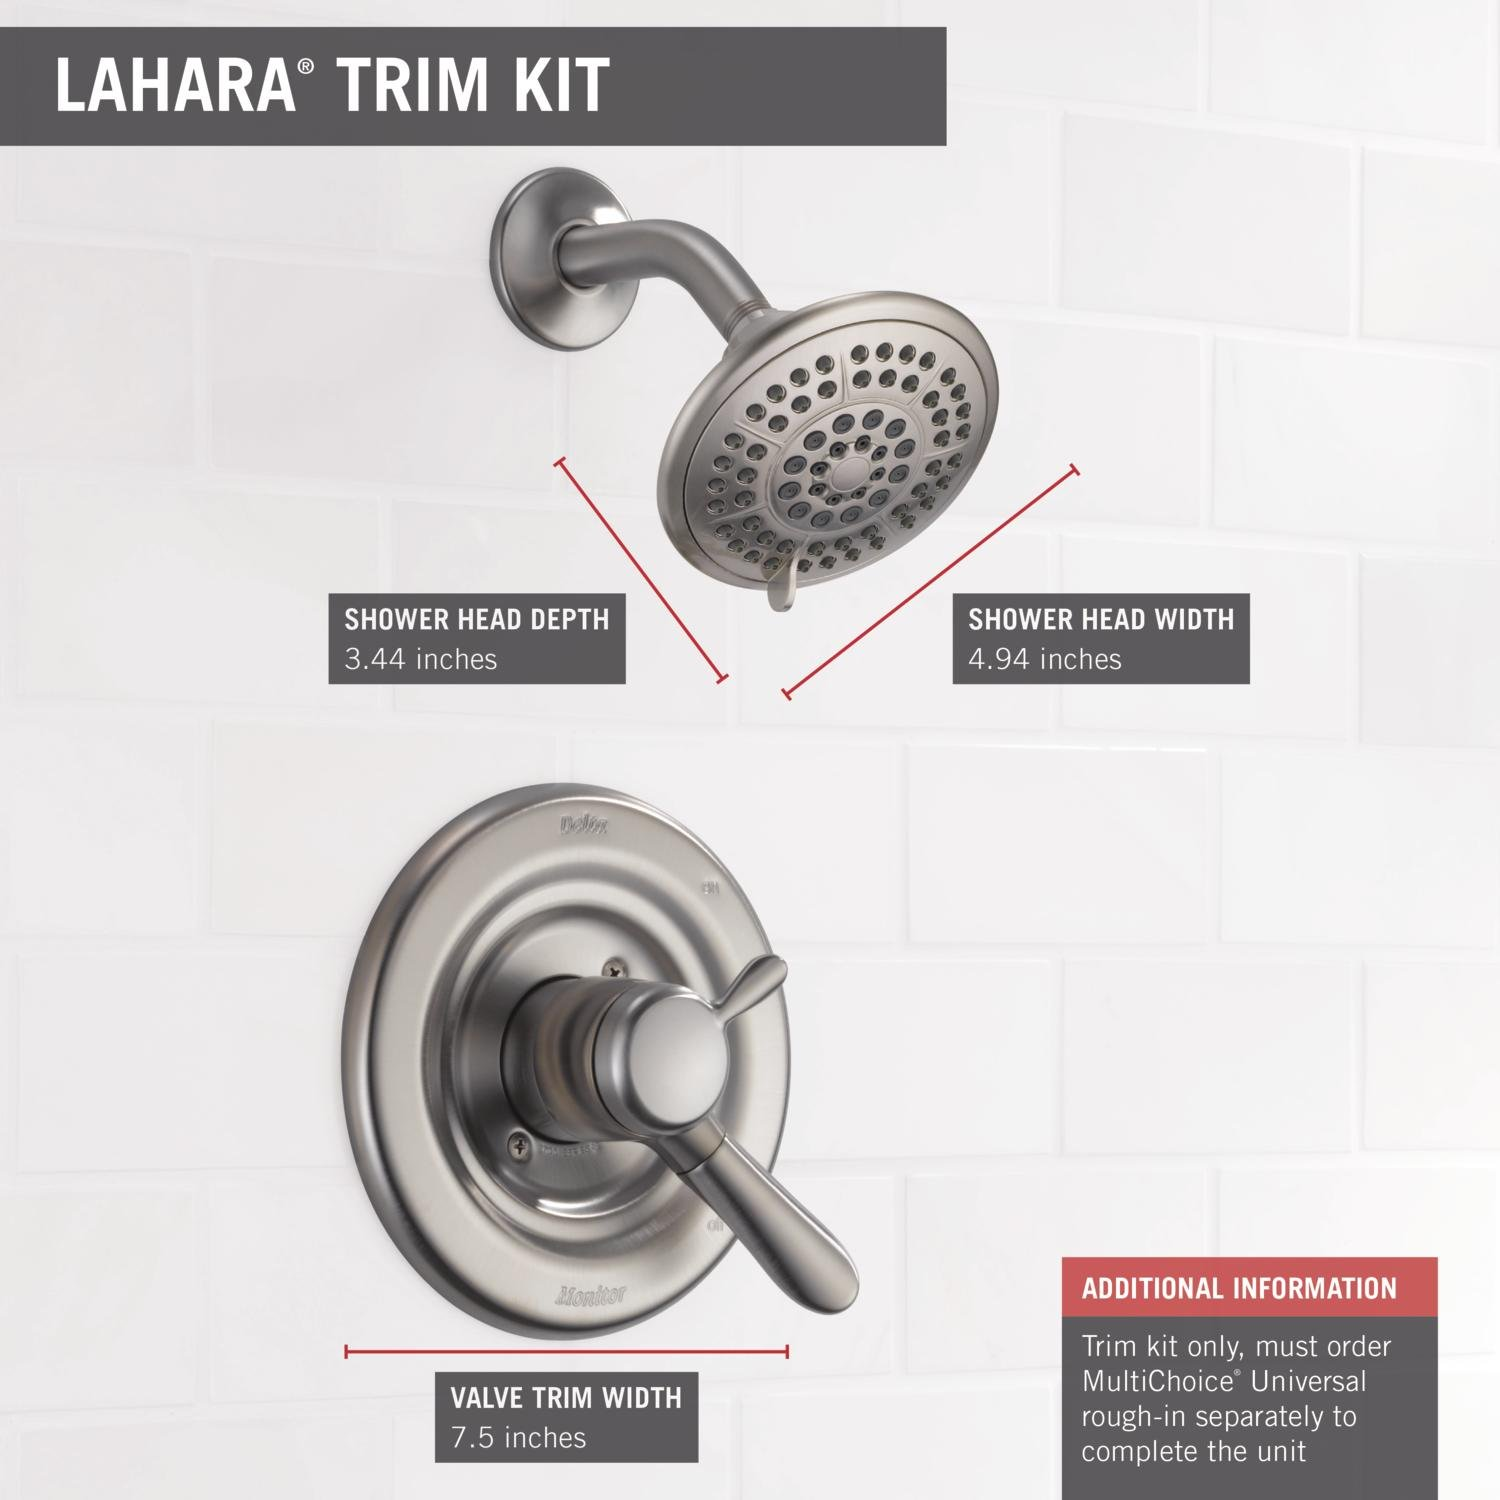 Exceptionnel Delta T17238 SS Lahara 17 Series Dual Function Shower Trim Kit With 5 Spray  Touch Clean Shower Head, Stainless (Valve Not Included)   Shower  Installation ...